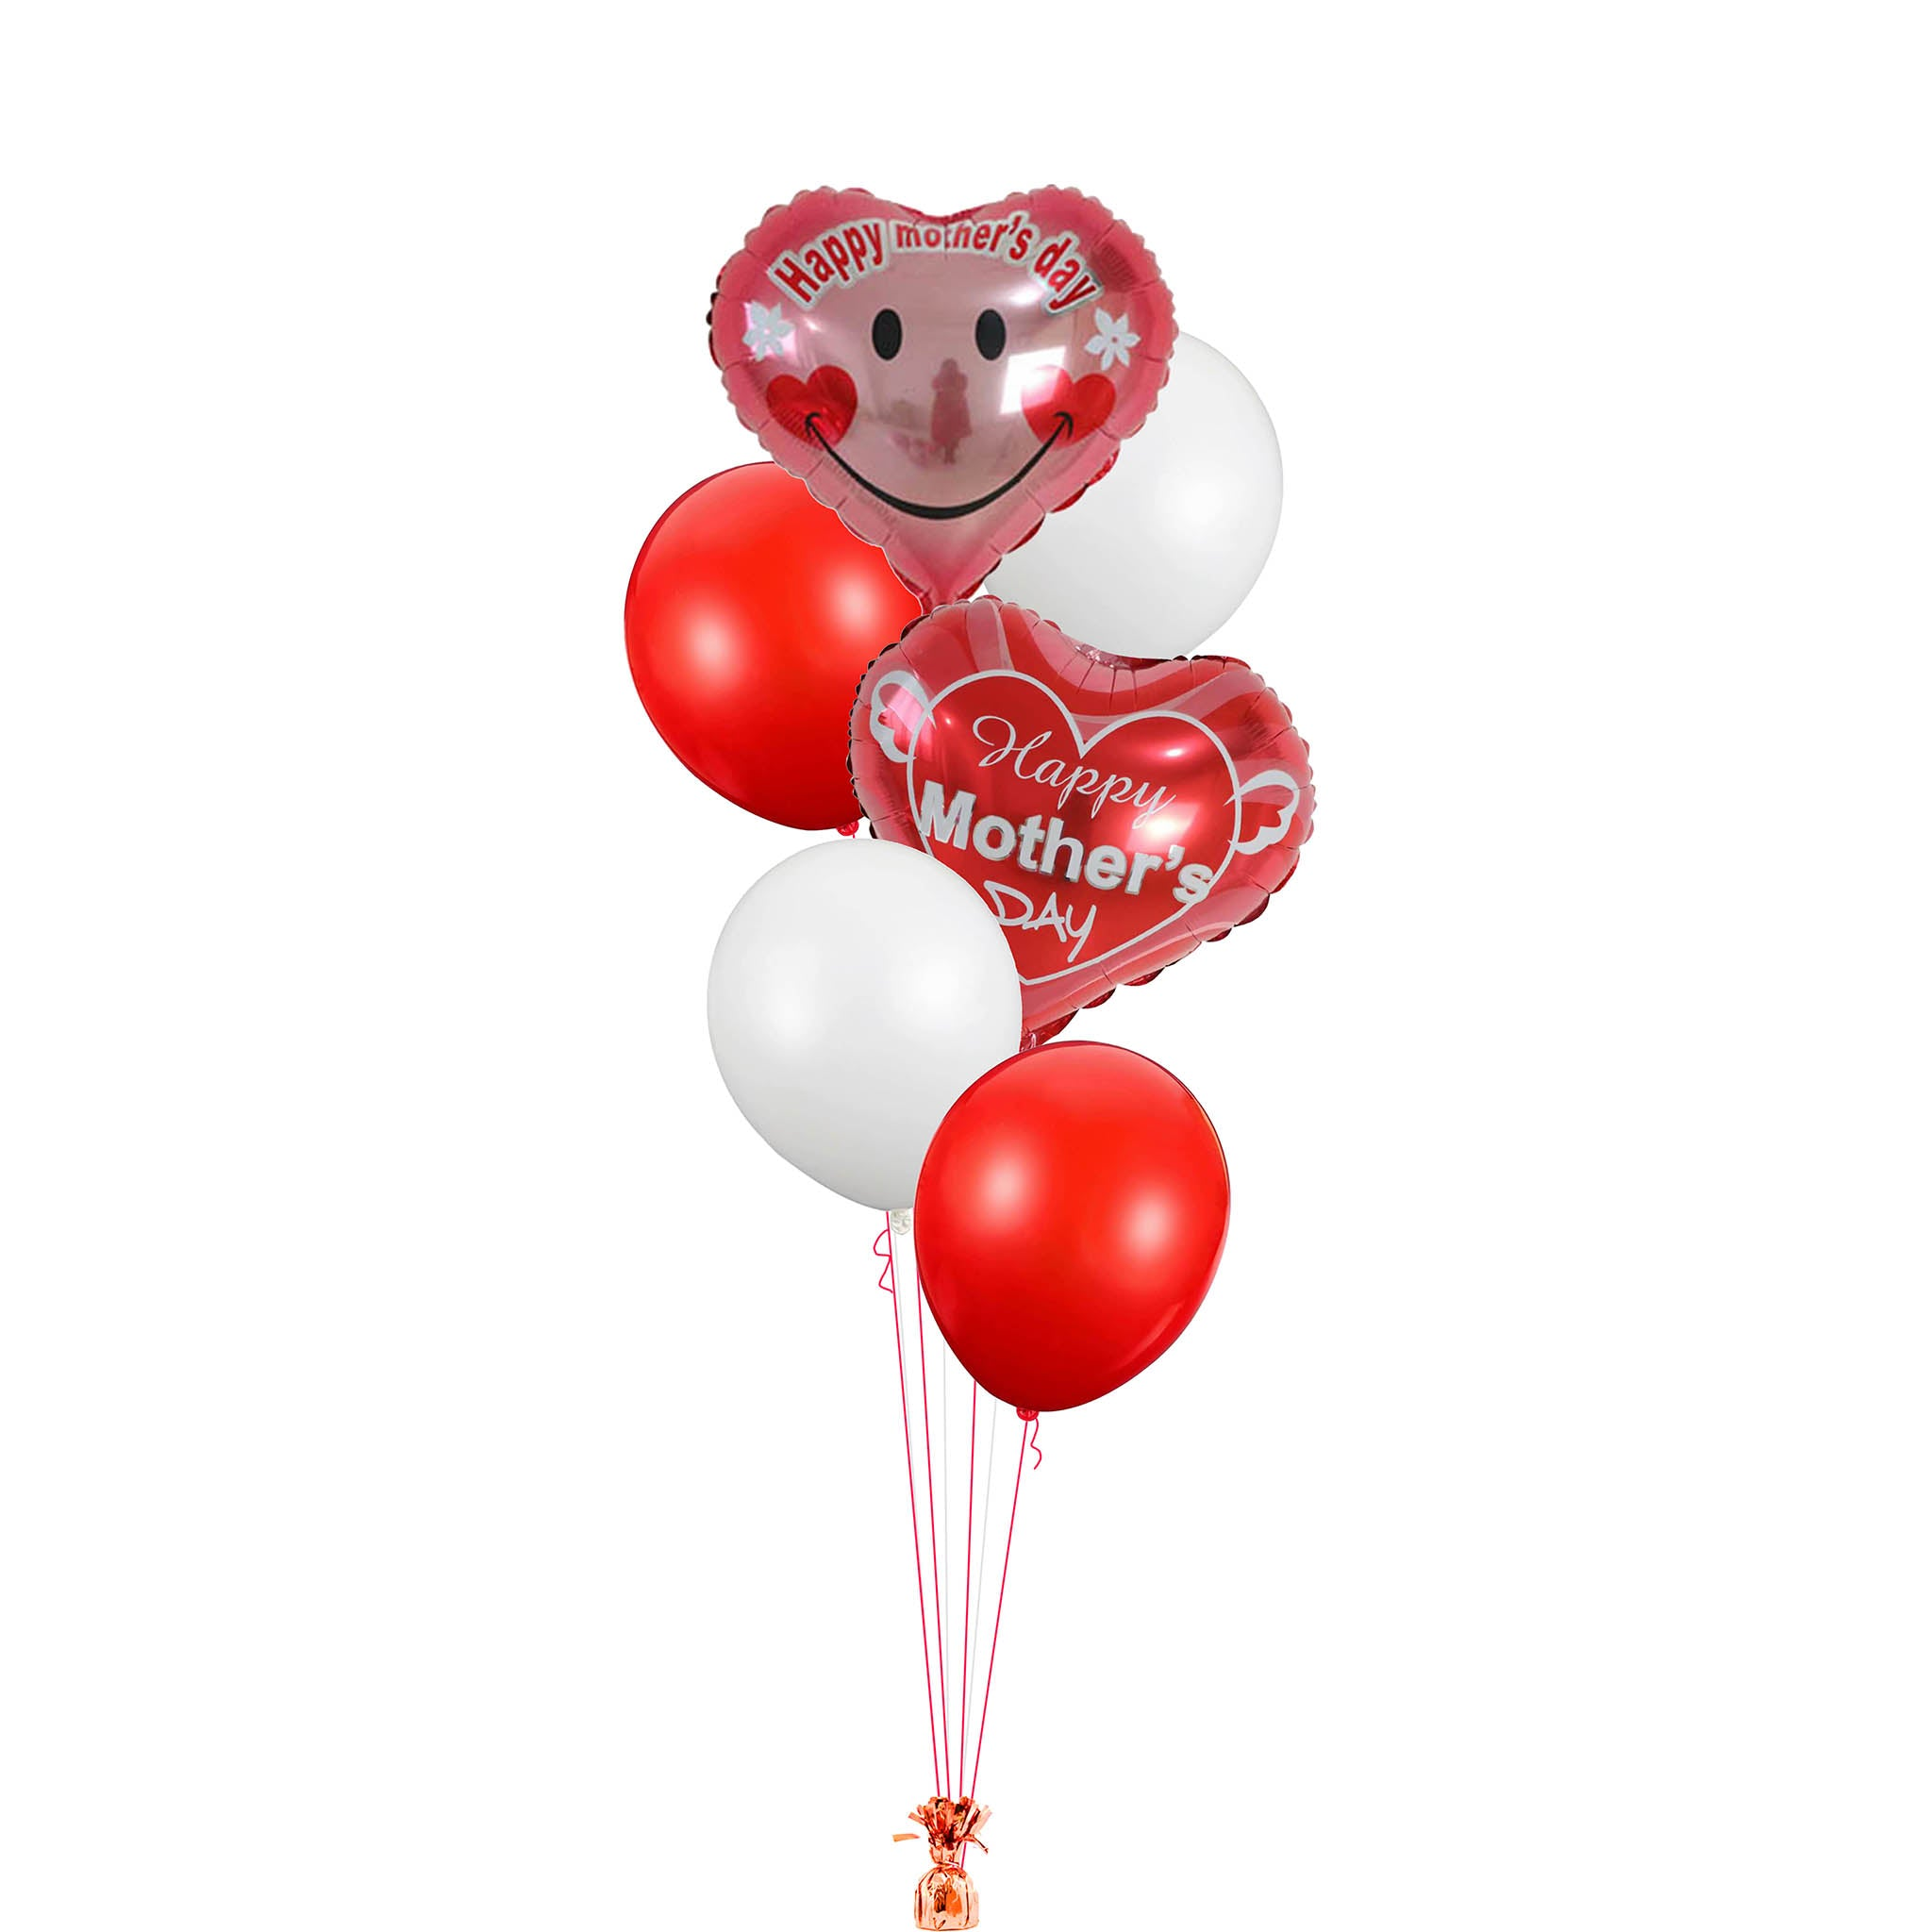 happy mother's day balloons bouquet for sale online in Dubai